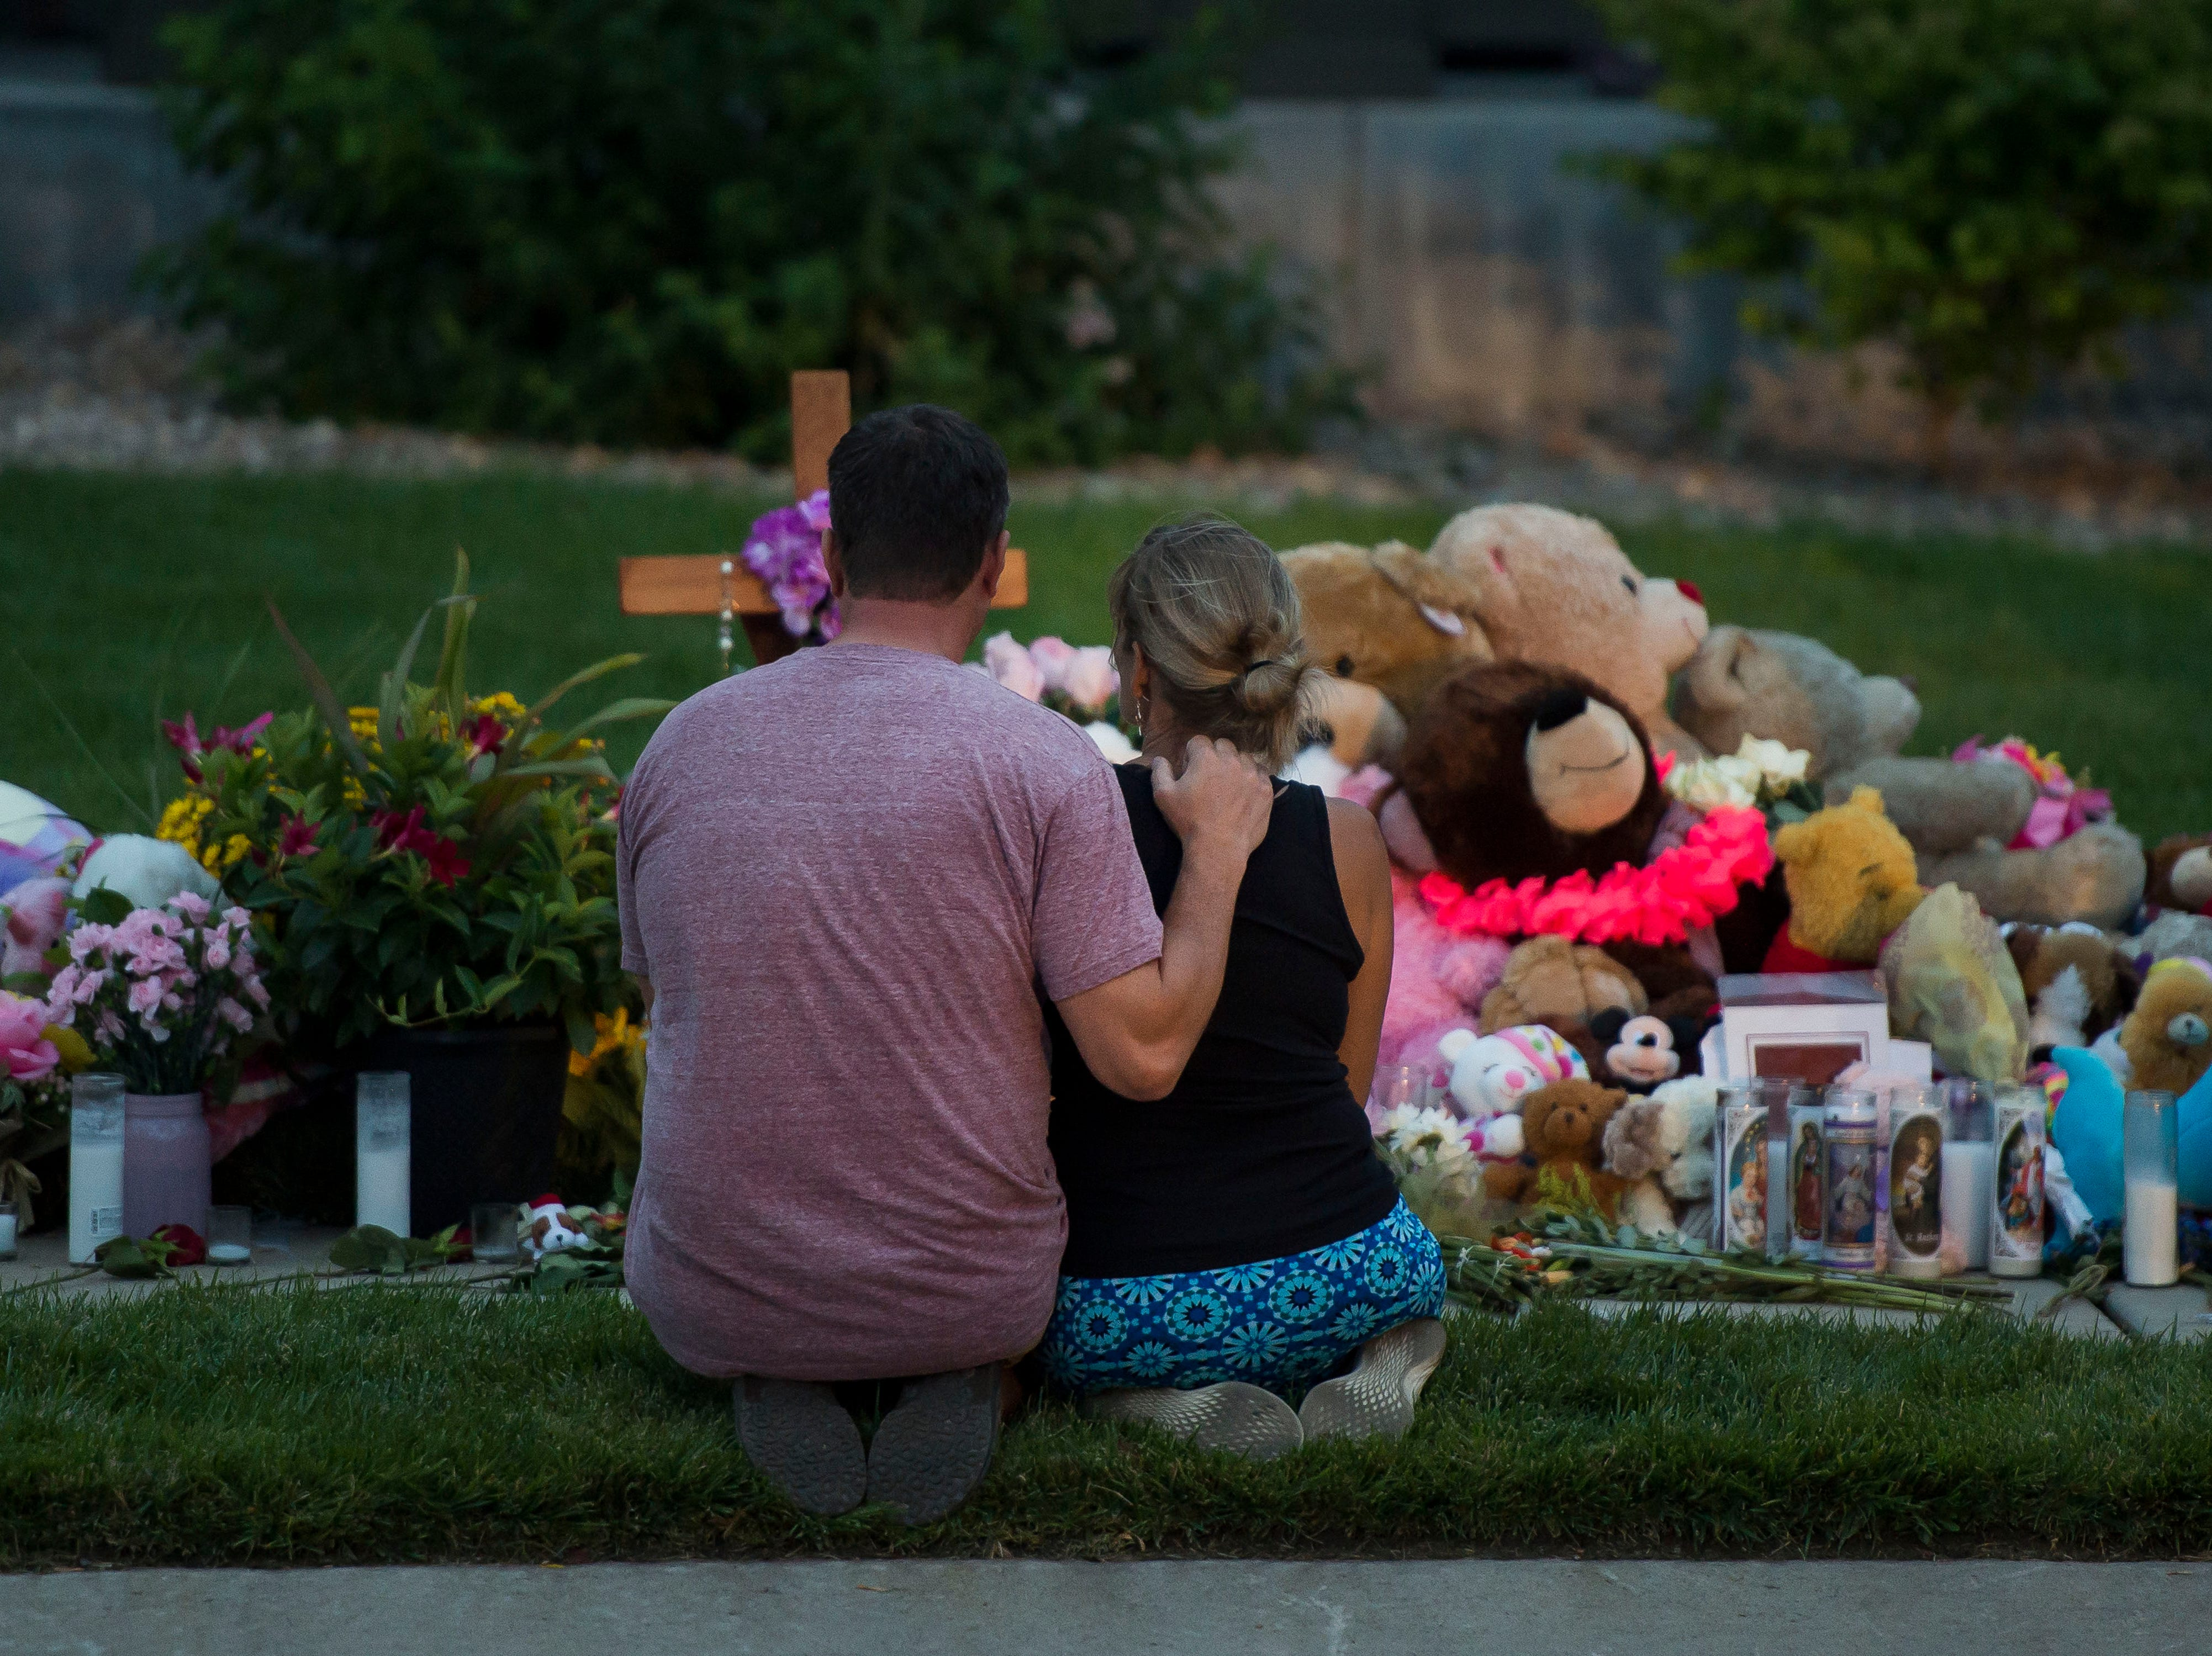 Jason and Diane Crookshank, from Erie, sit in front of a memorial before people gather for a candle-lit vigil for the slain Shanann Watts and her two daughters, Bella, 4, and Celeste, 3, in front of the Watts' family home on Friday, Aug. 17, 2018, in Frederick, Colo.